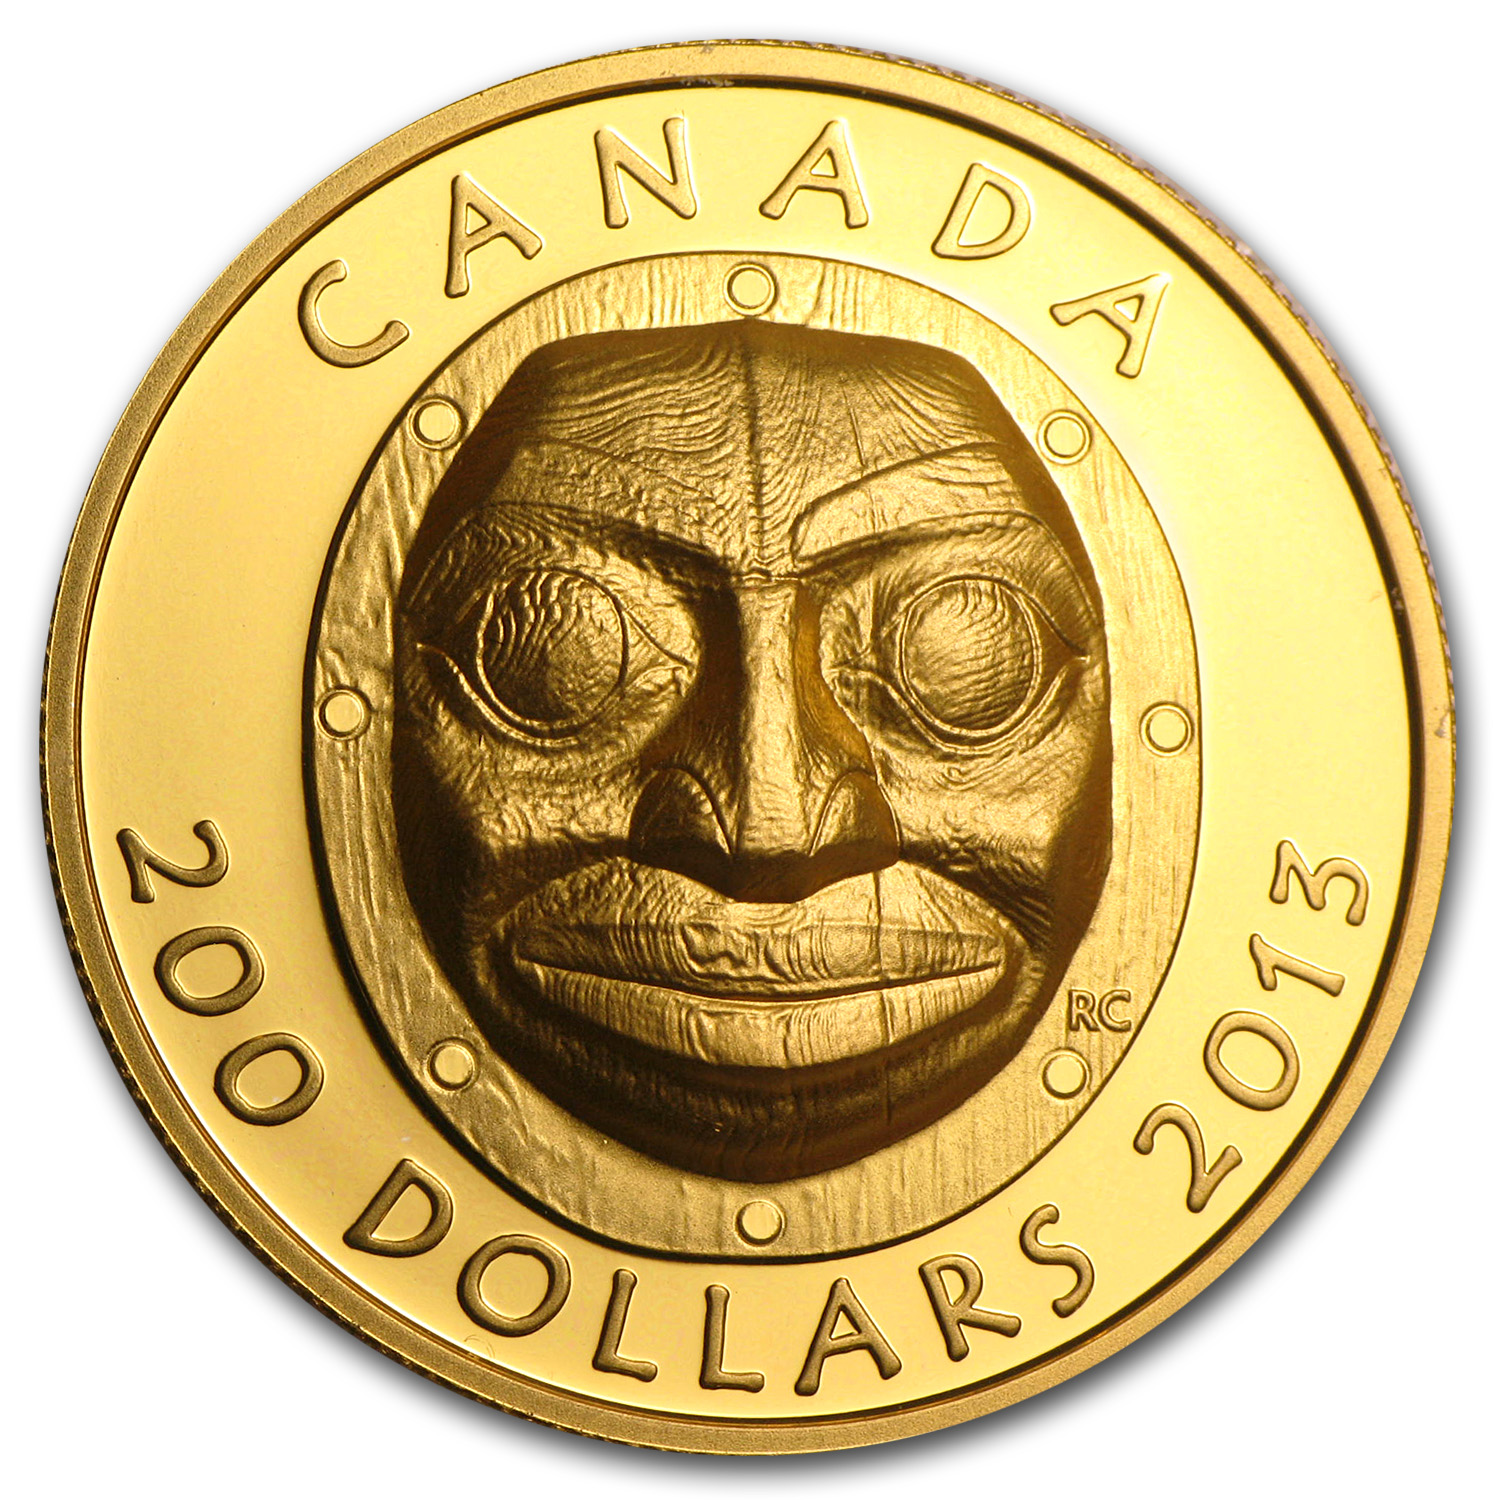 2013 Canada 1 oz Proof Gold $200 Grandmother Moon Mask (UHR)